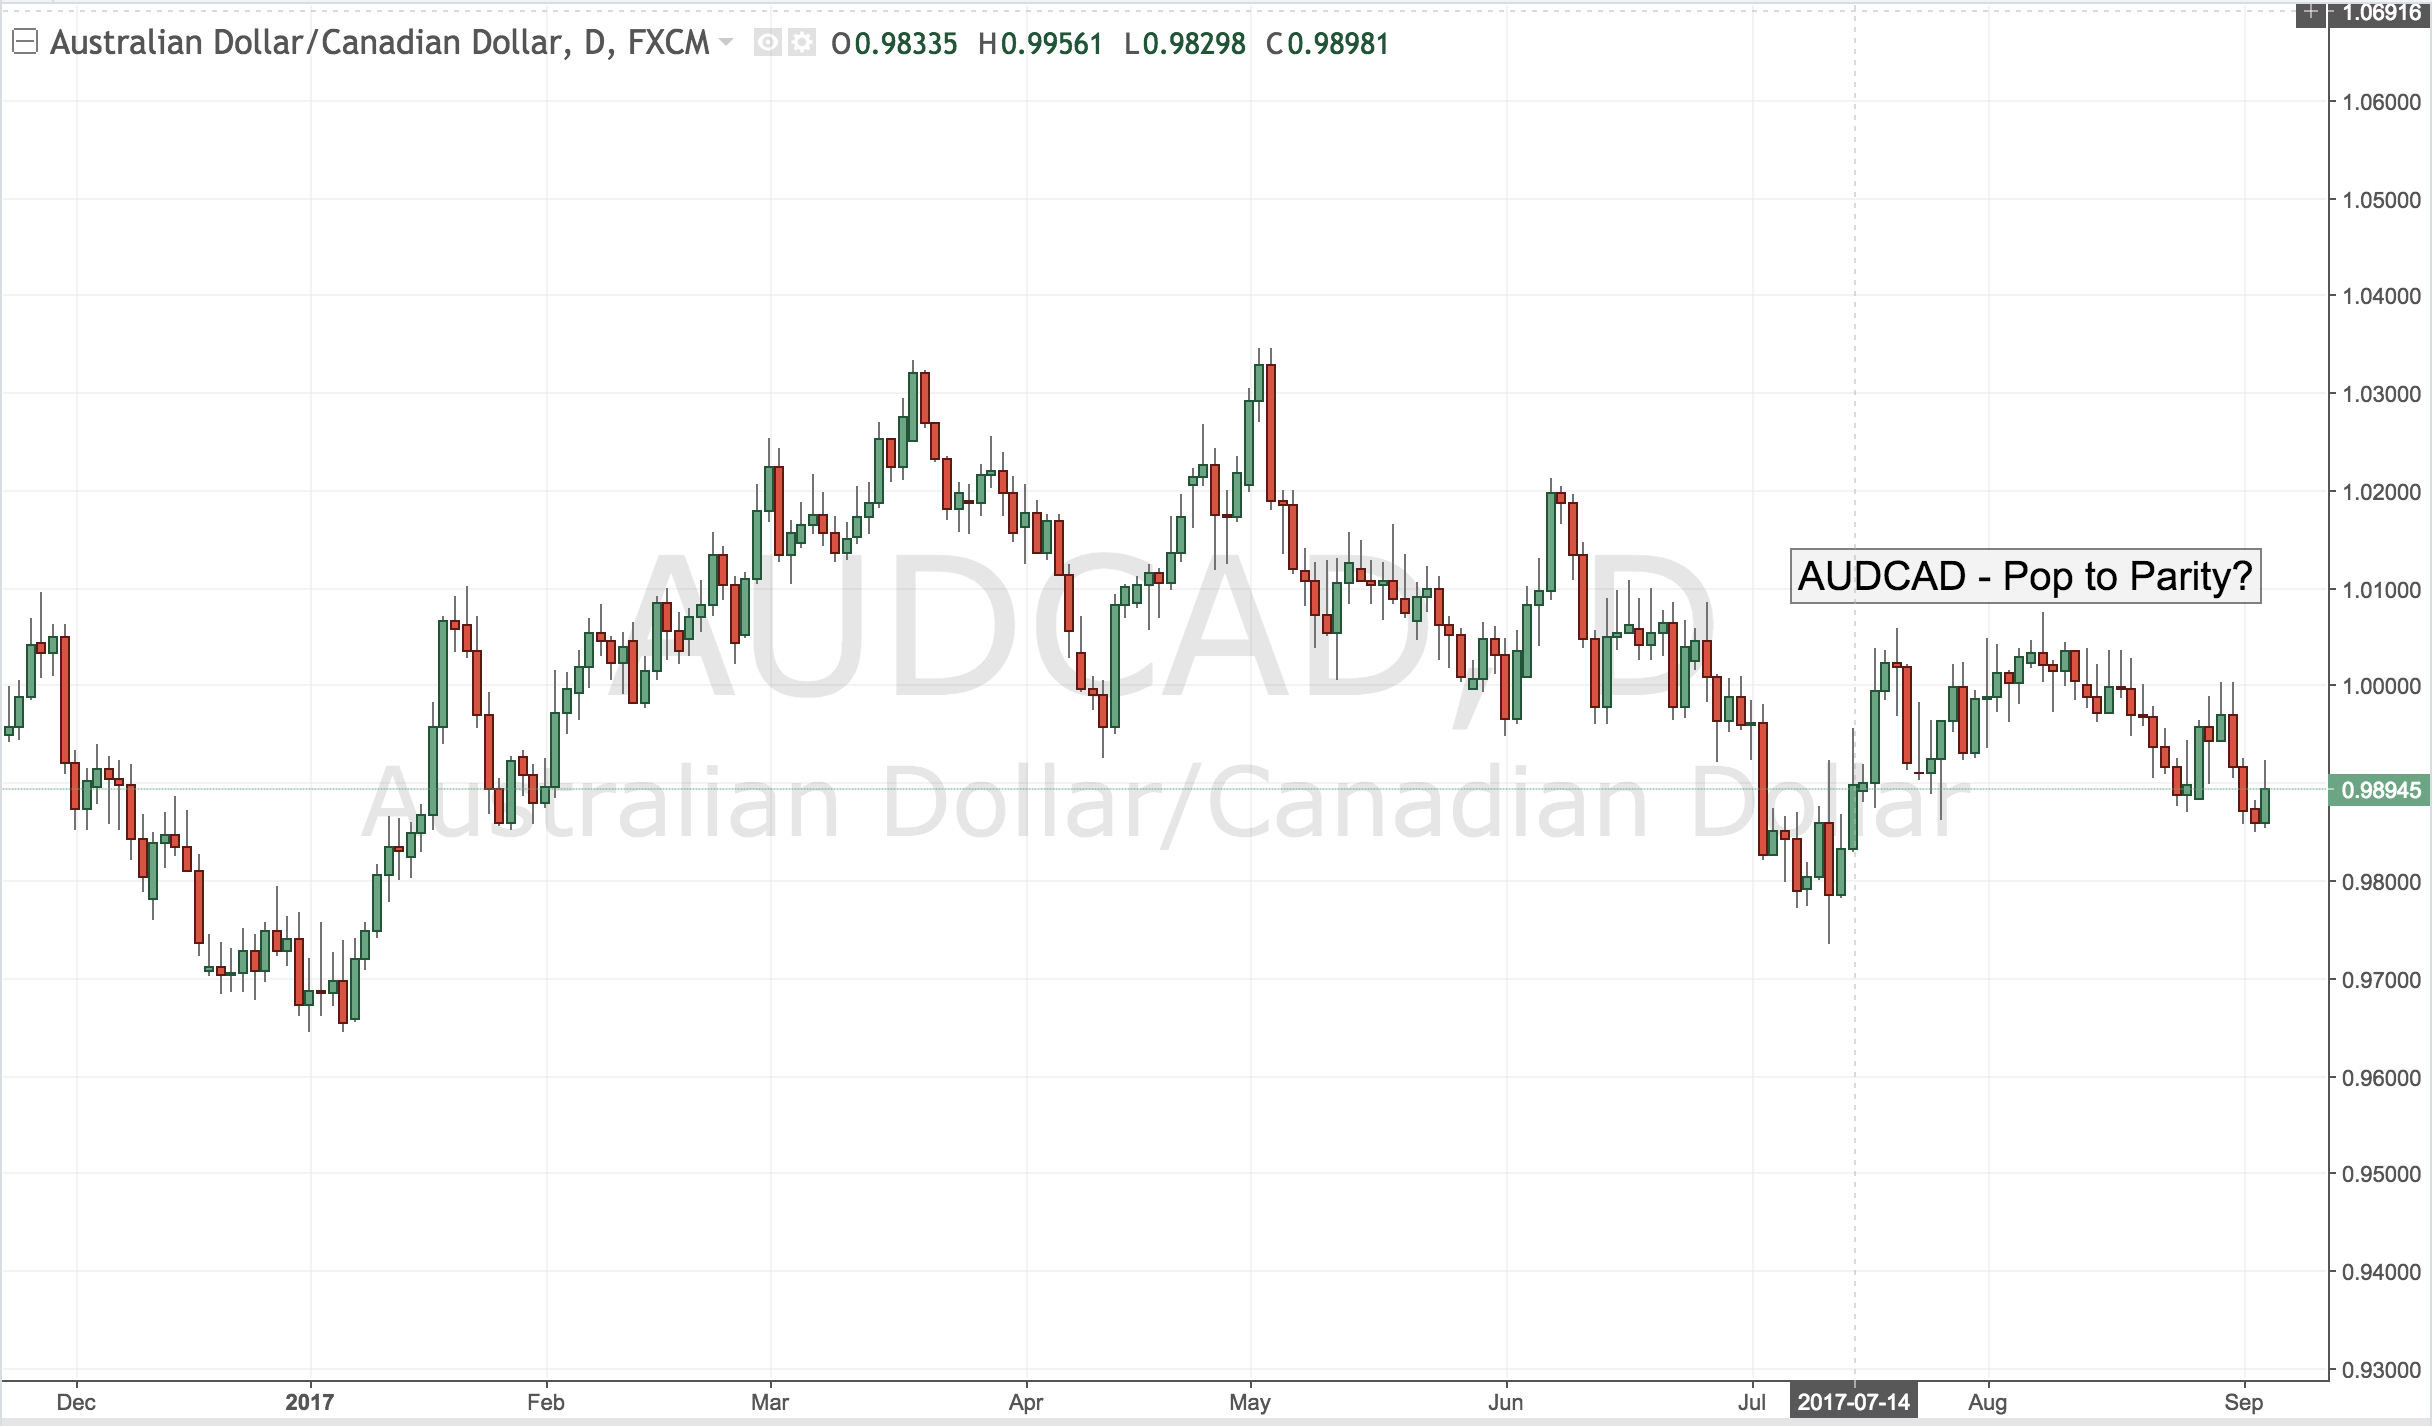 AUDCAD – Pop to Parity?